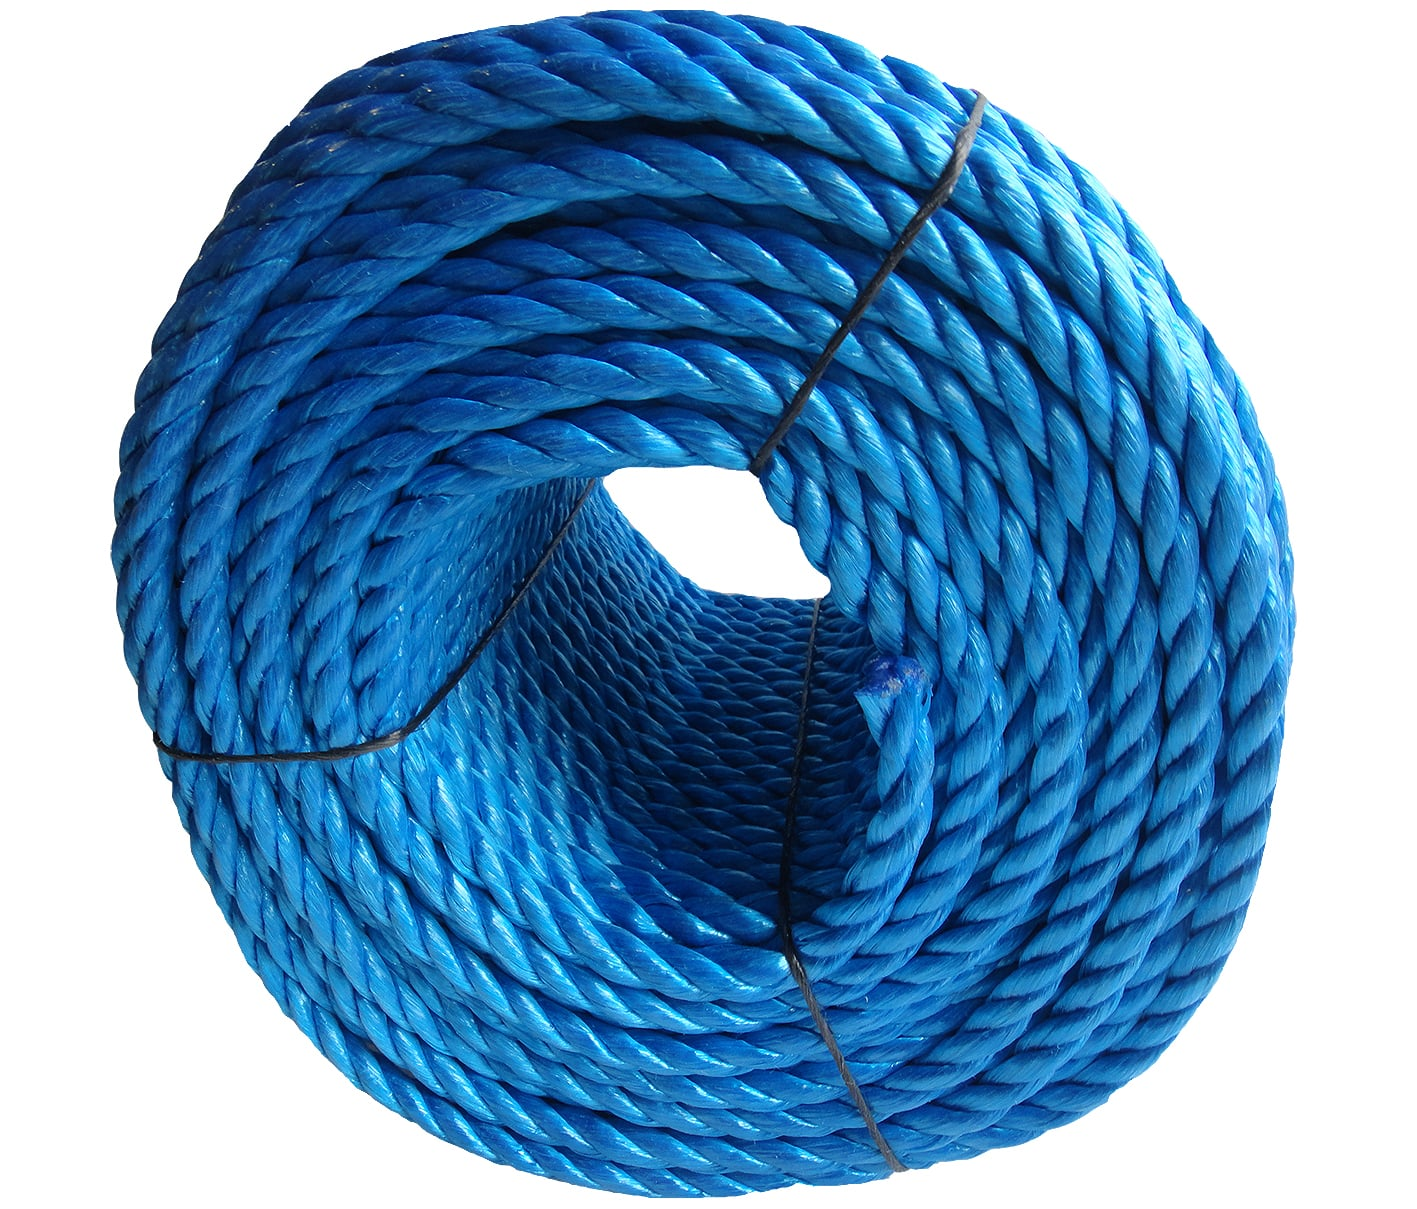 Polypropylene rope - 14mm Dia Blue x 220m Coil